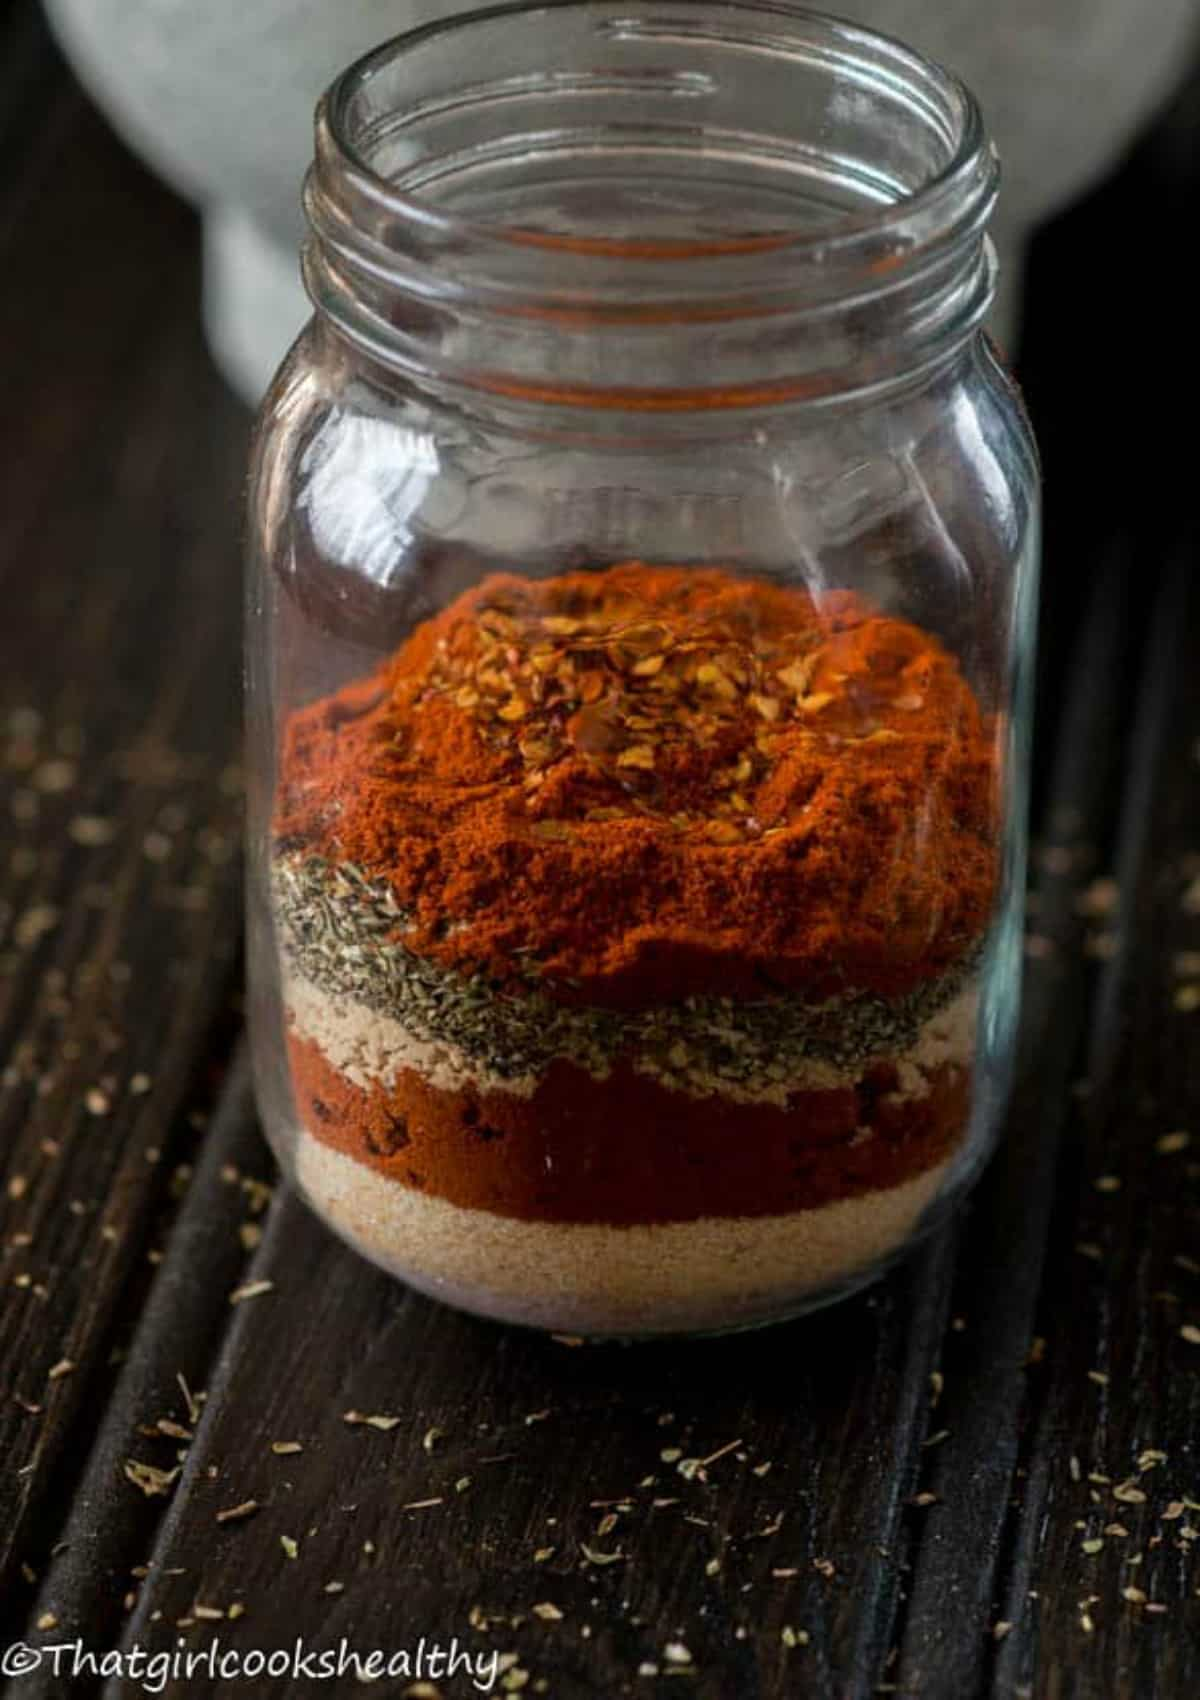 Half a spice blend in the jar